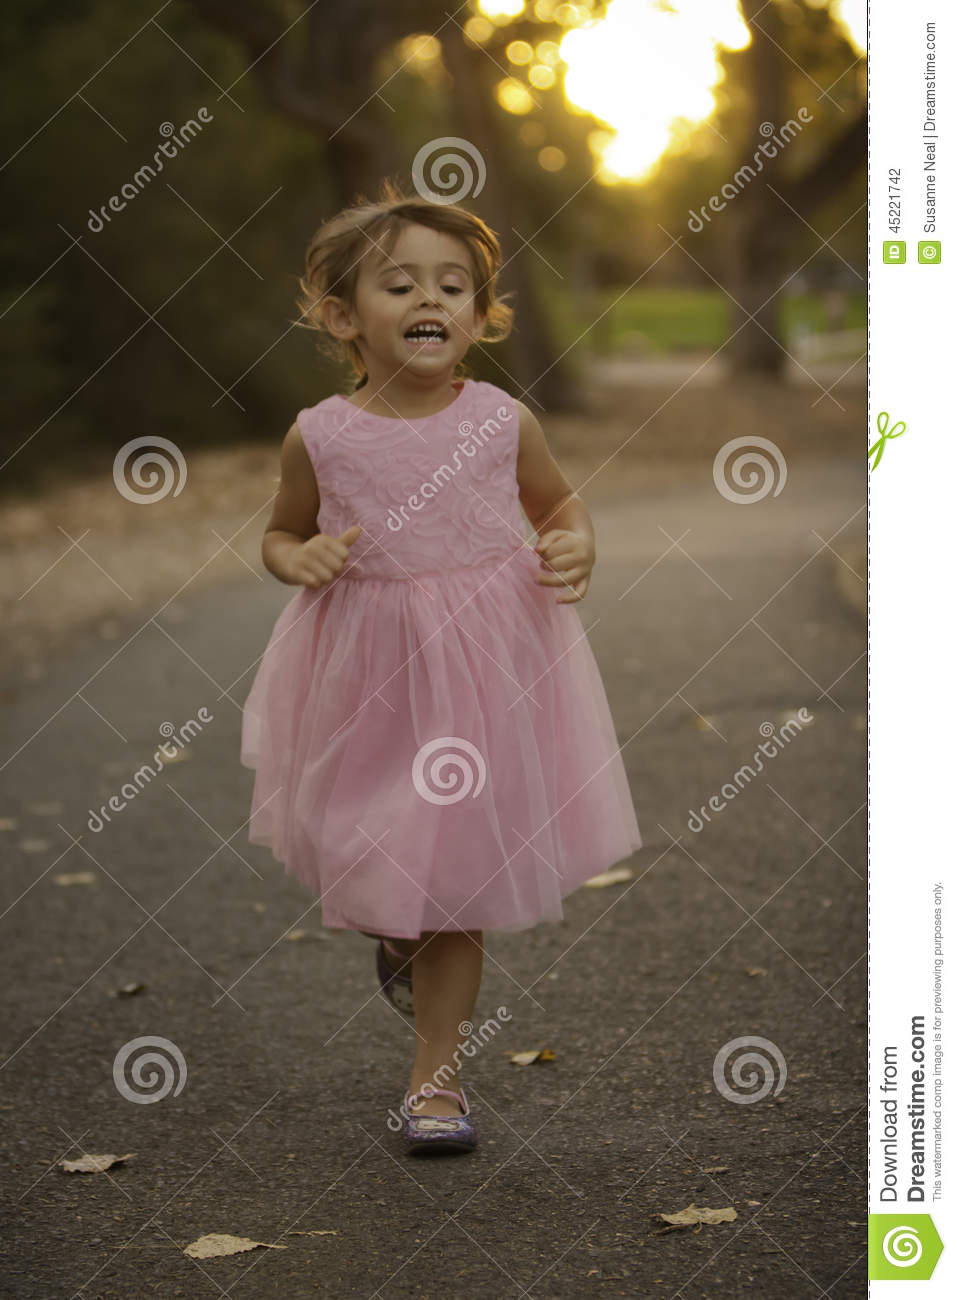 Pretty, 3-1/2 year old girl wearing a pastel pink fancy dress, running on a  path at a park. Girl has brown hair pulled back into a braid. She is  smiling.